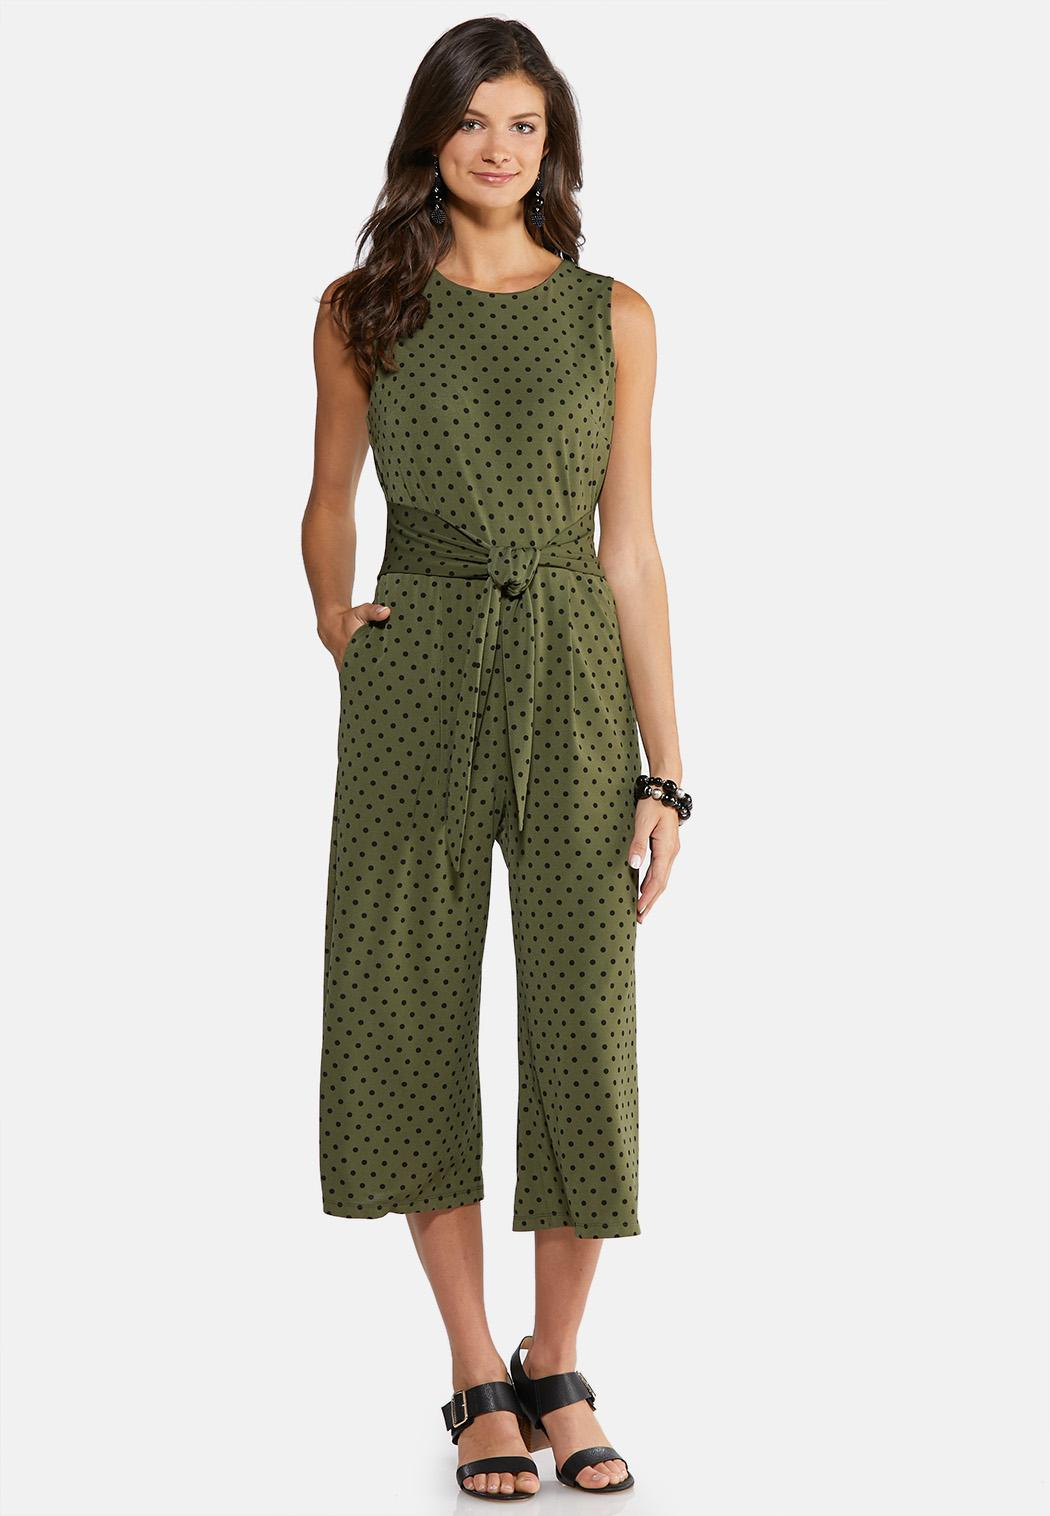 Plus Size Polka Dot Cropped Jumpsuit Jumpsuits Cato Fashions